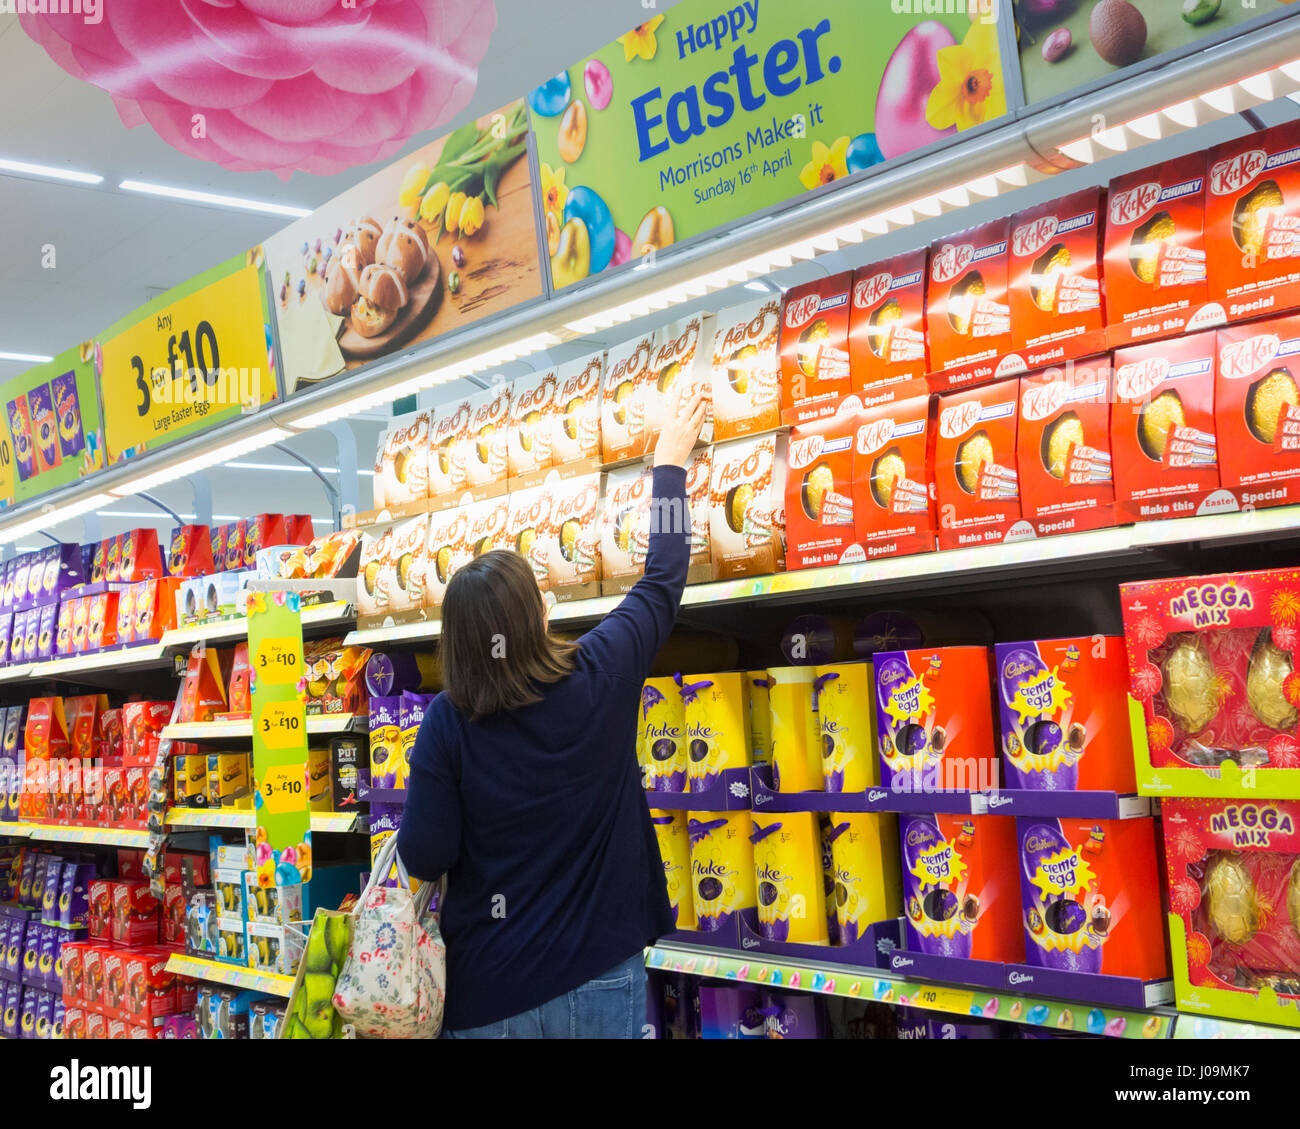 Easter eggs uk stock photos easter eggs uk stock images alamy morrisons supermarket uk woman buying easter eggs stock image negle Image collections